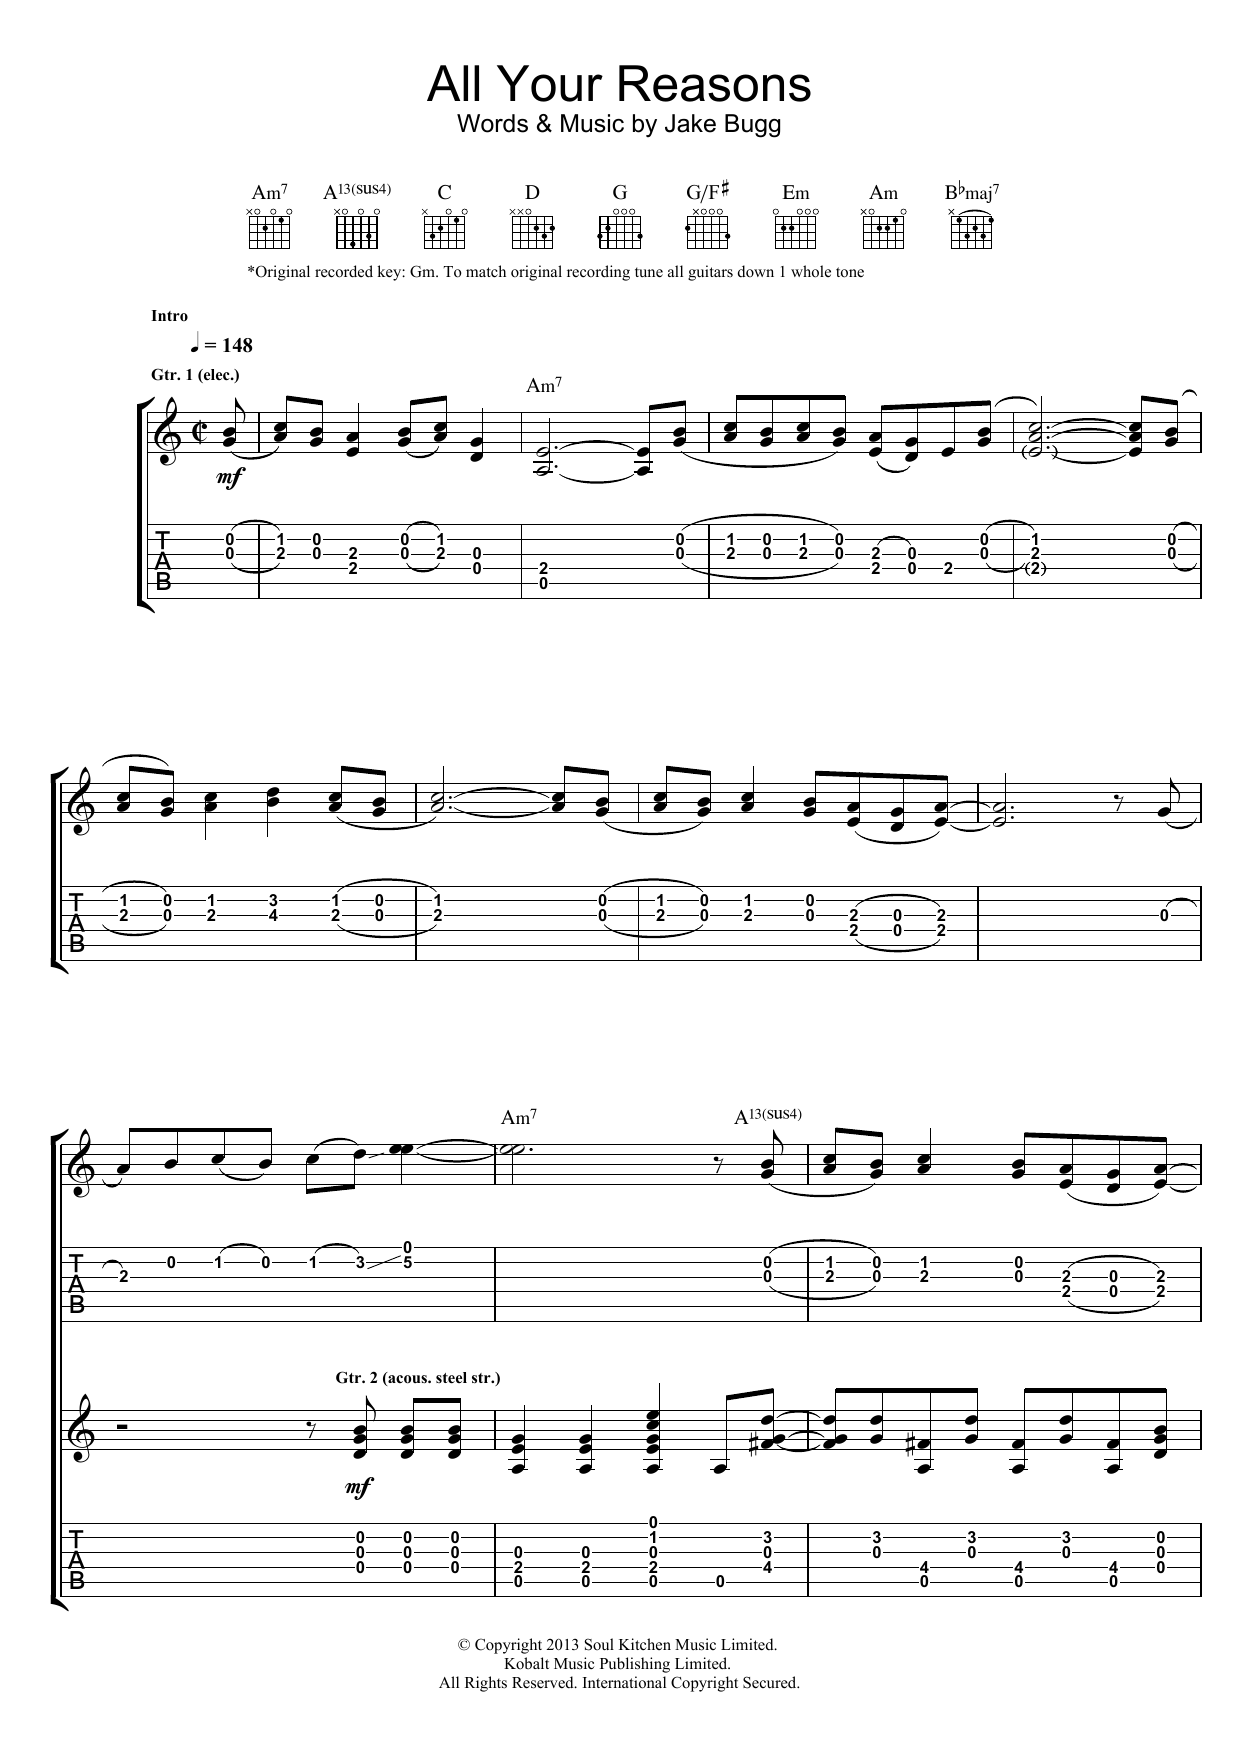 All Your Reasons Sheet Music